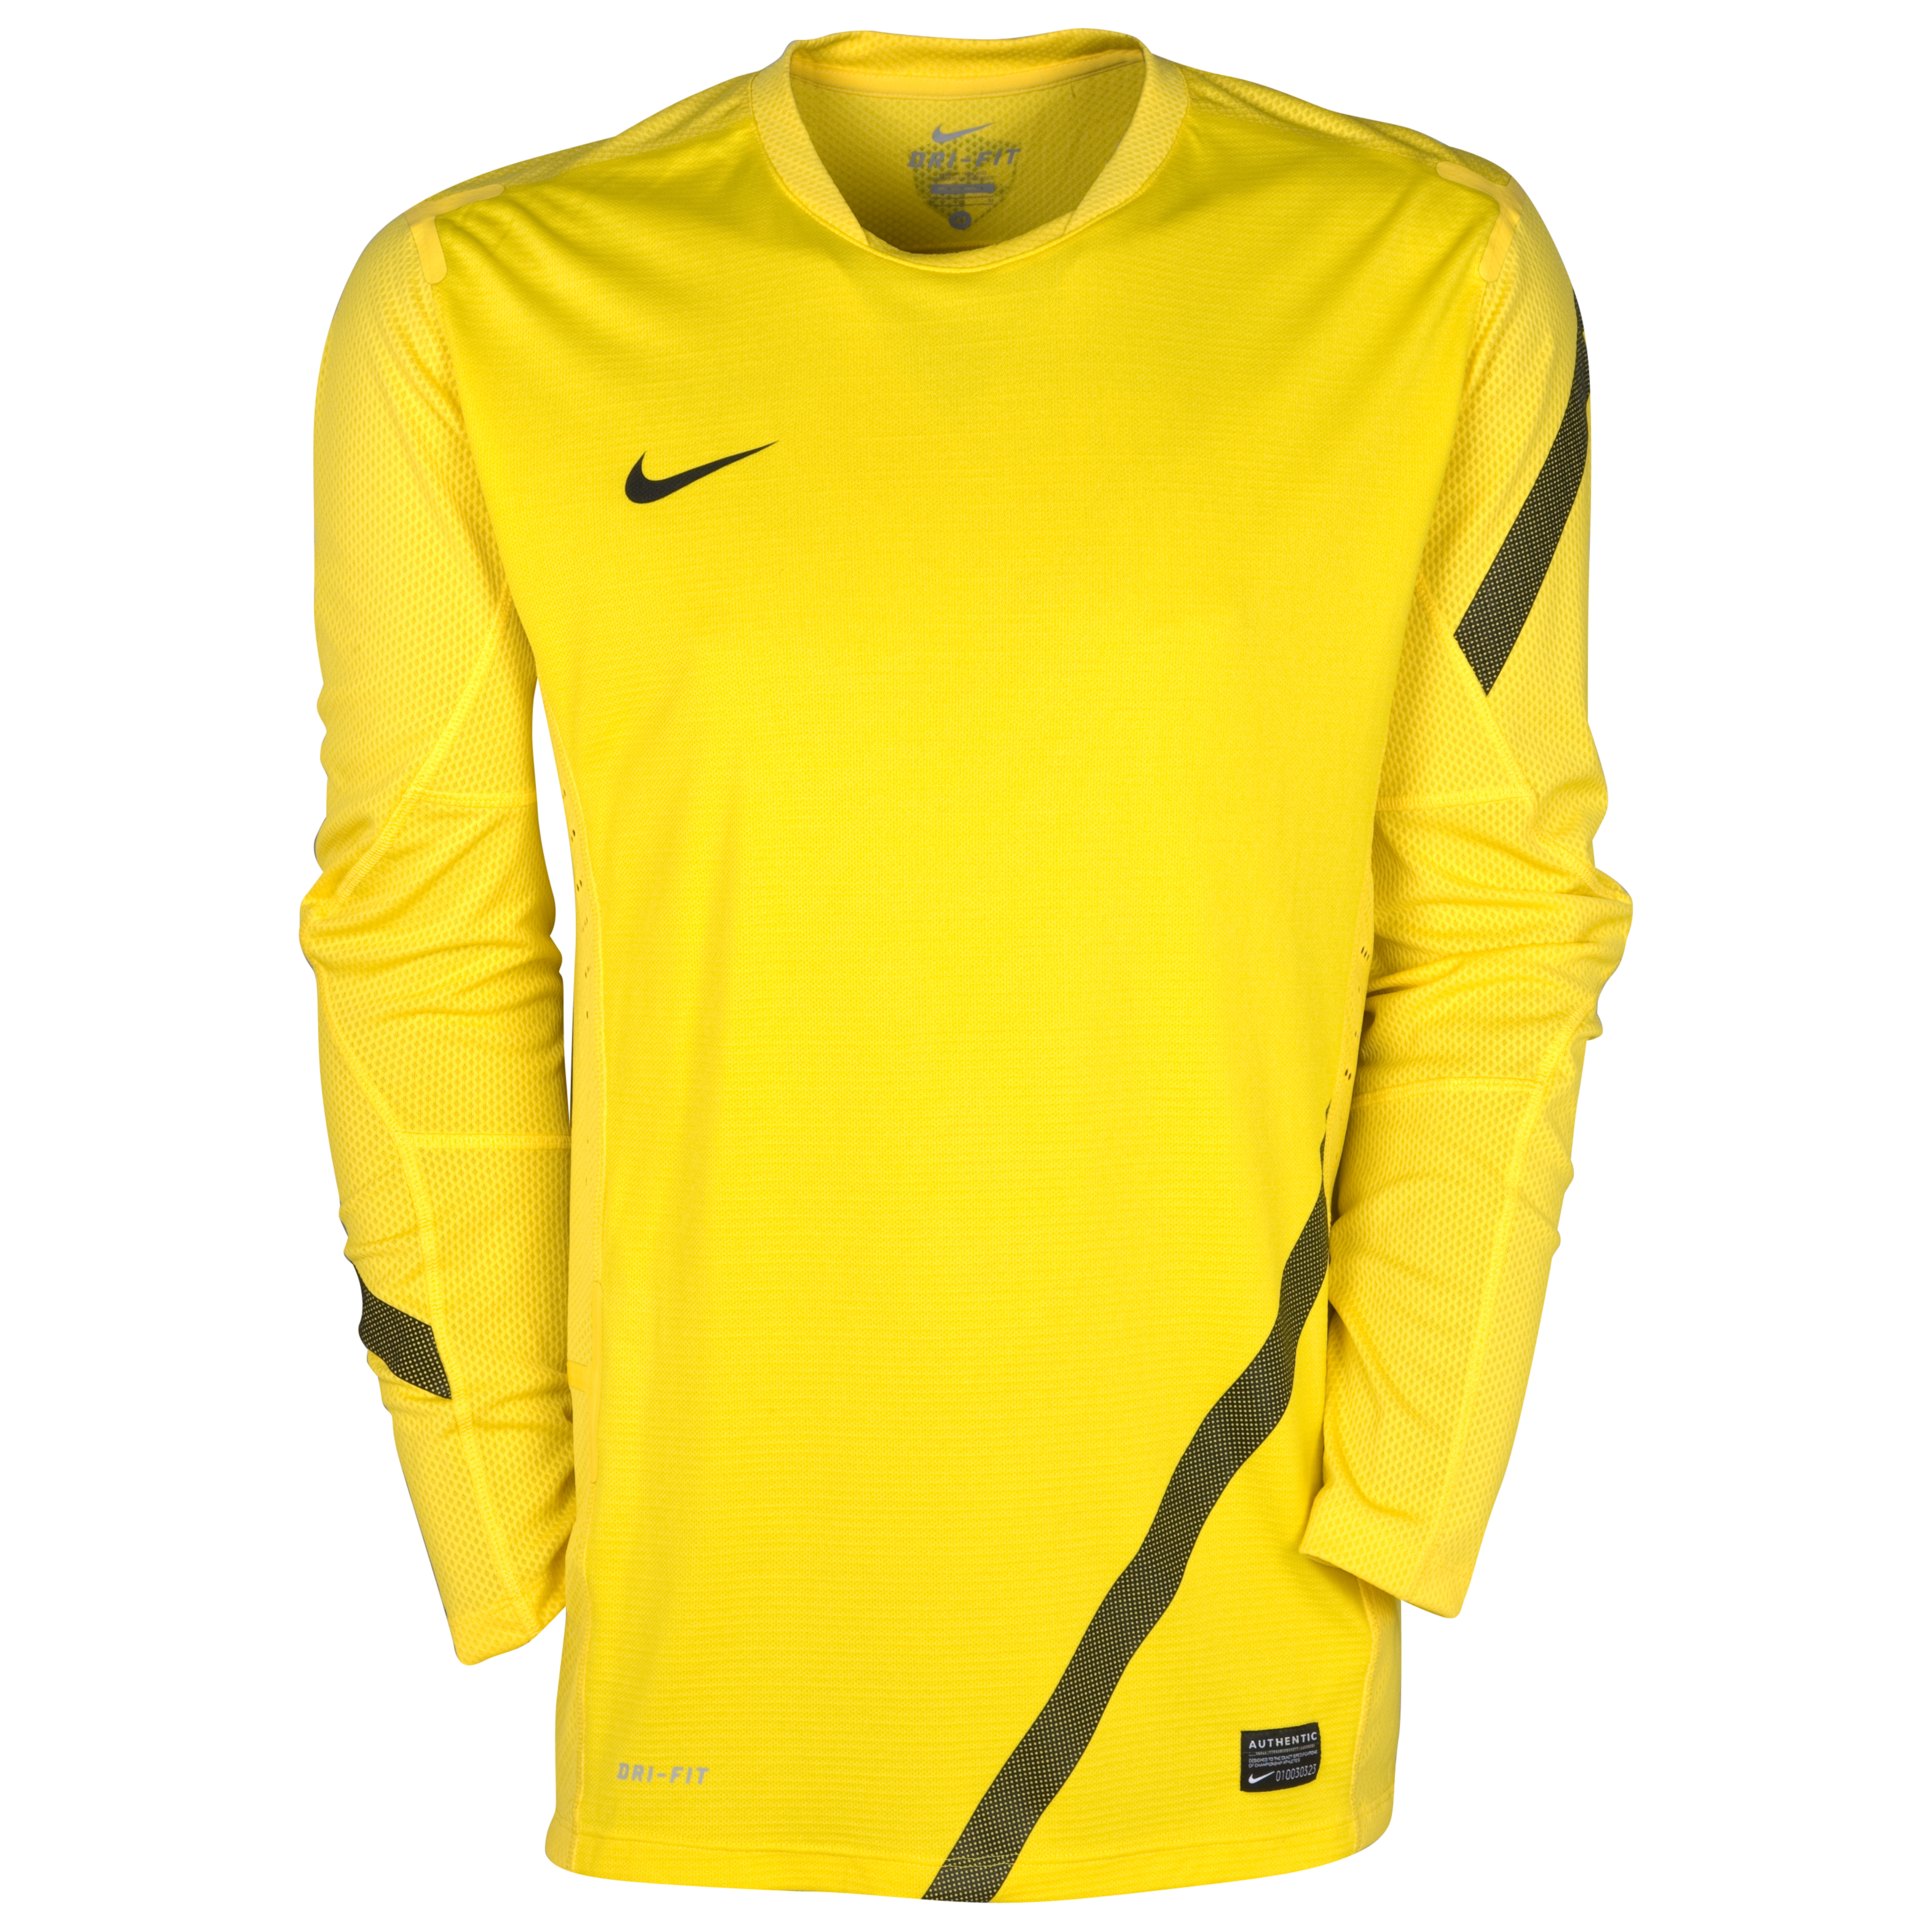 Nike Elite Training Top - Long Sleeve - Tour Yellow/Black/Black